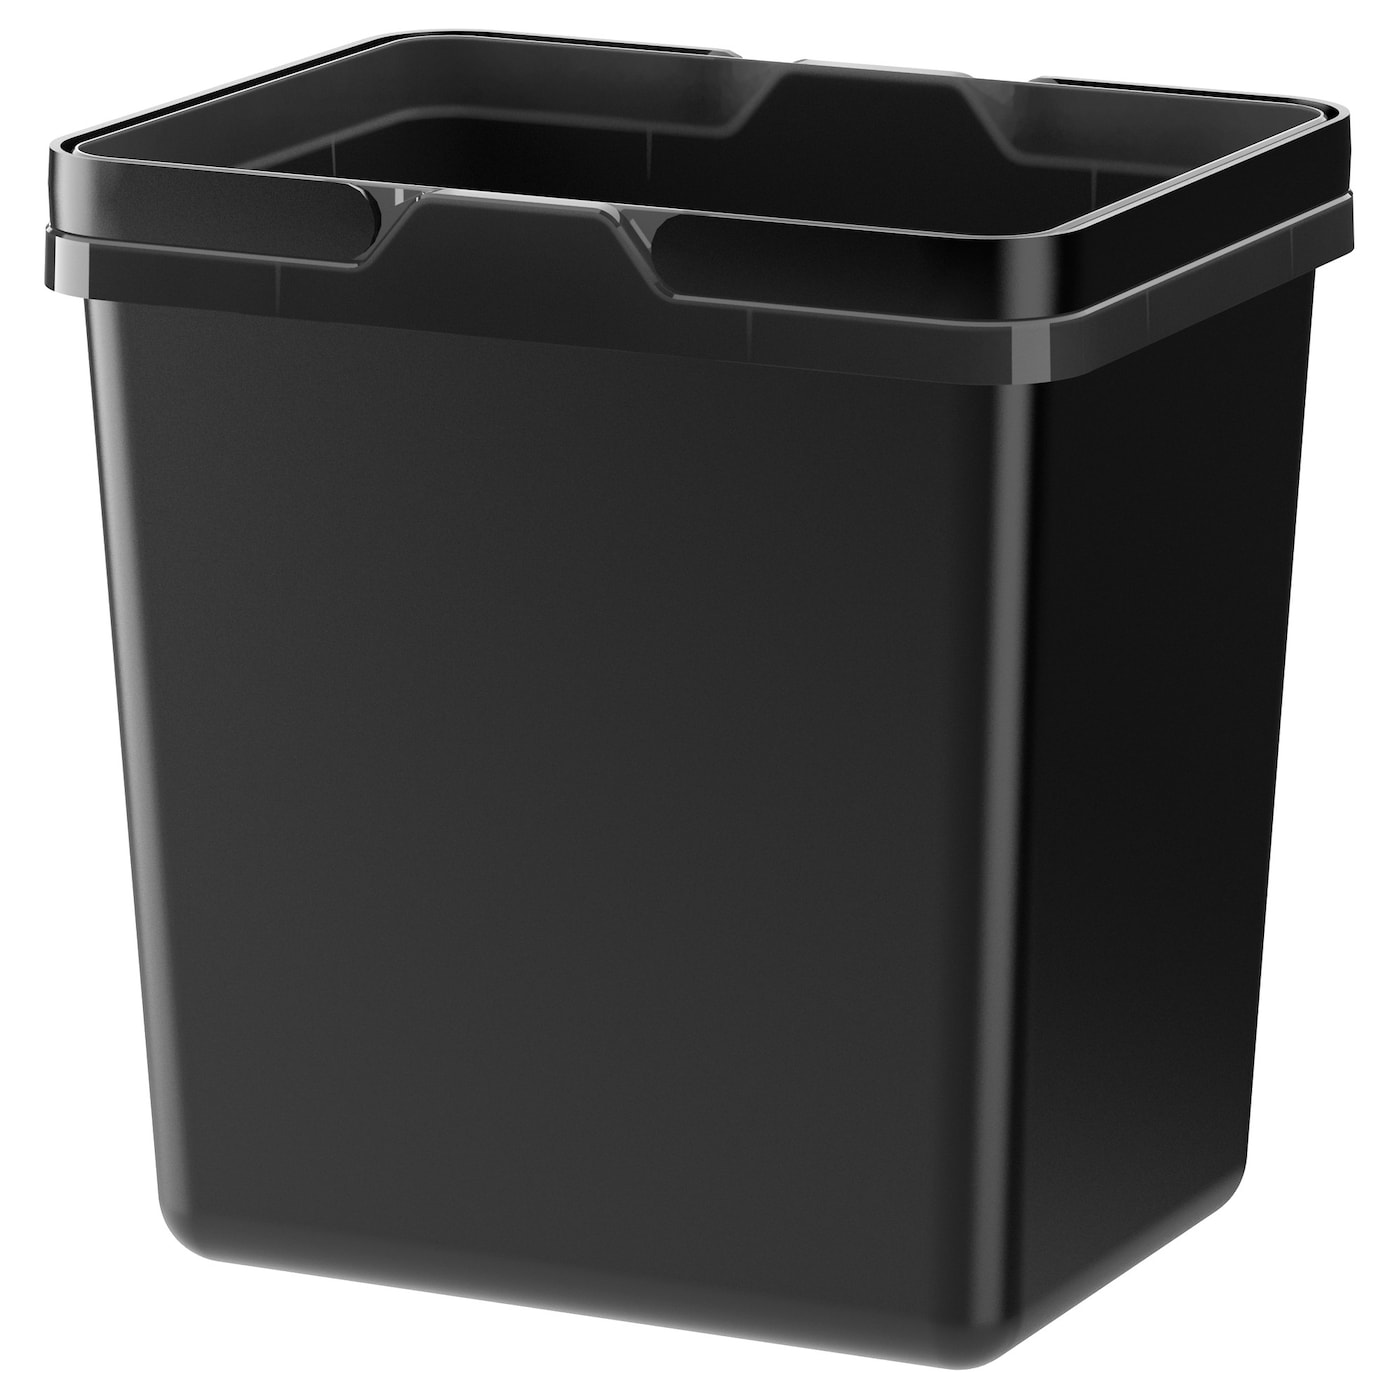 IKEA VARIERA waste sorting bin Rounded corners for easy cleaning.